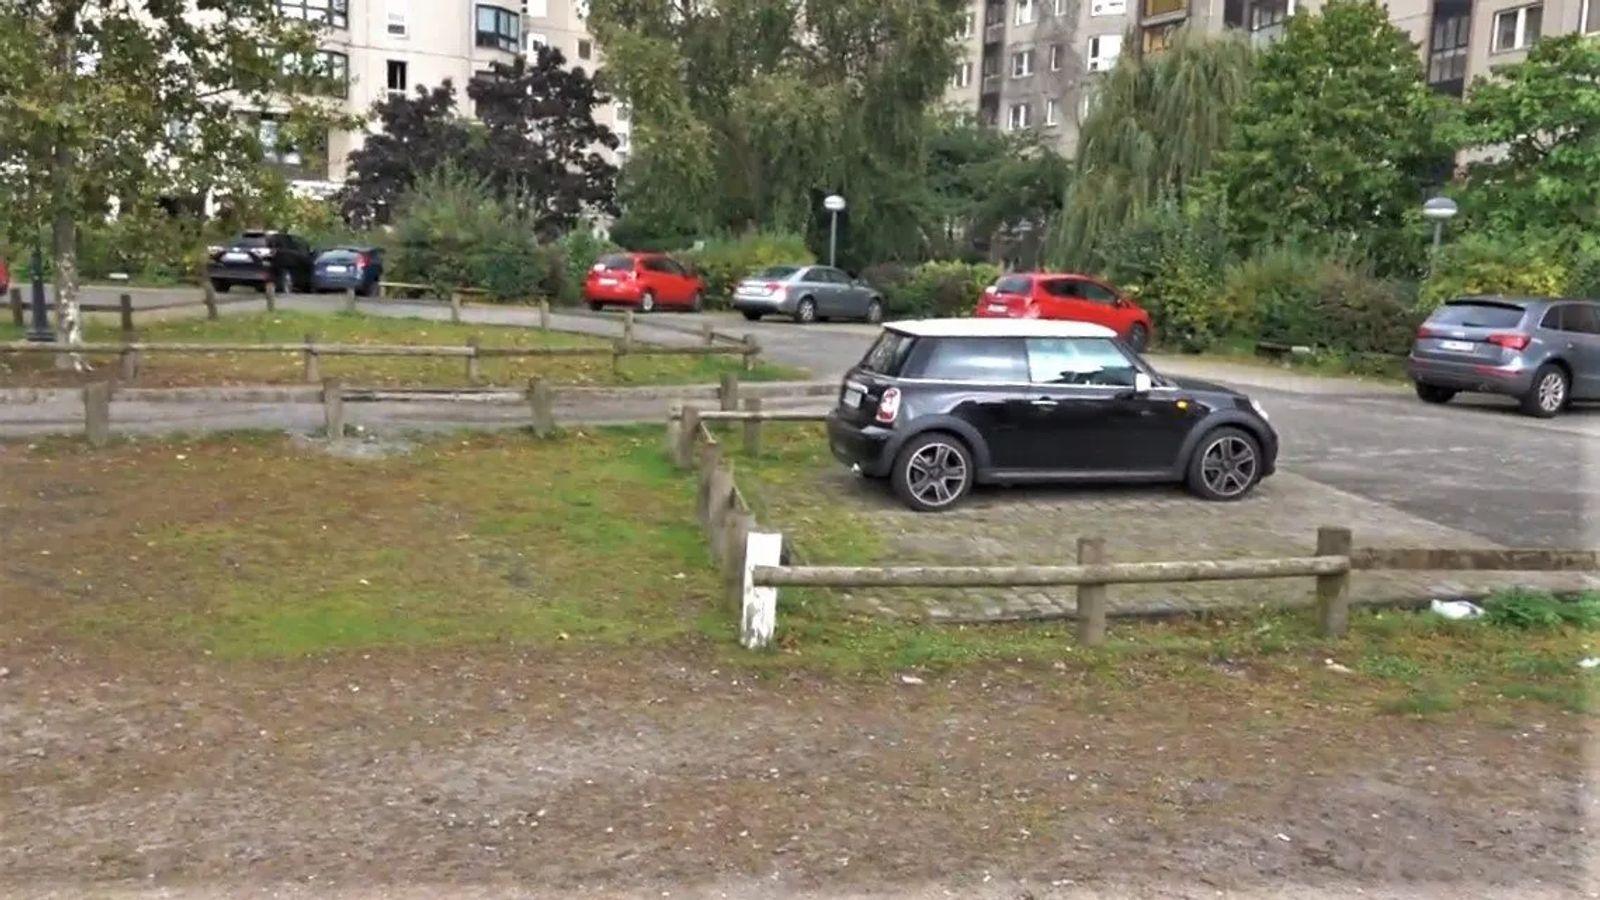 backpacking Eastern Europe 12 hours in berlin and what to see. A picture of a parking lot, where Hitlers Bunker once was